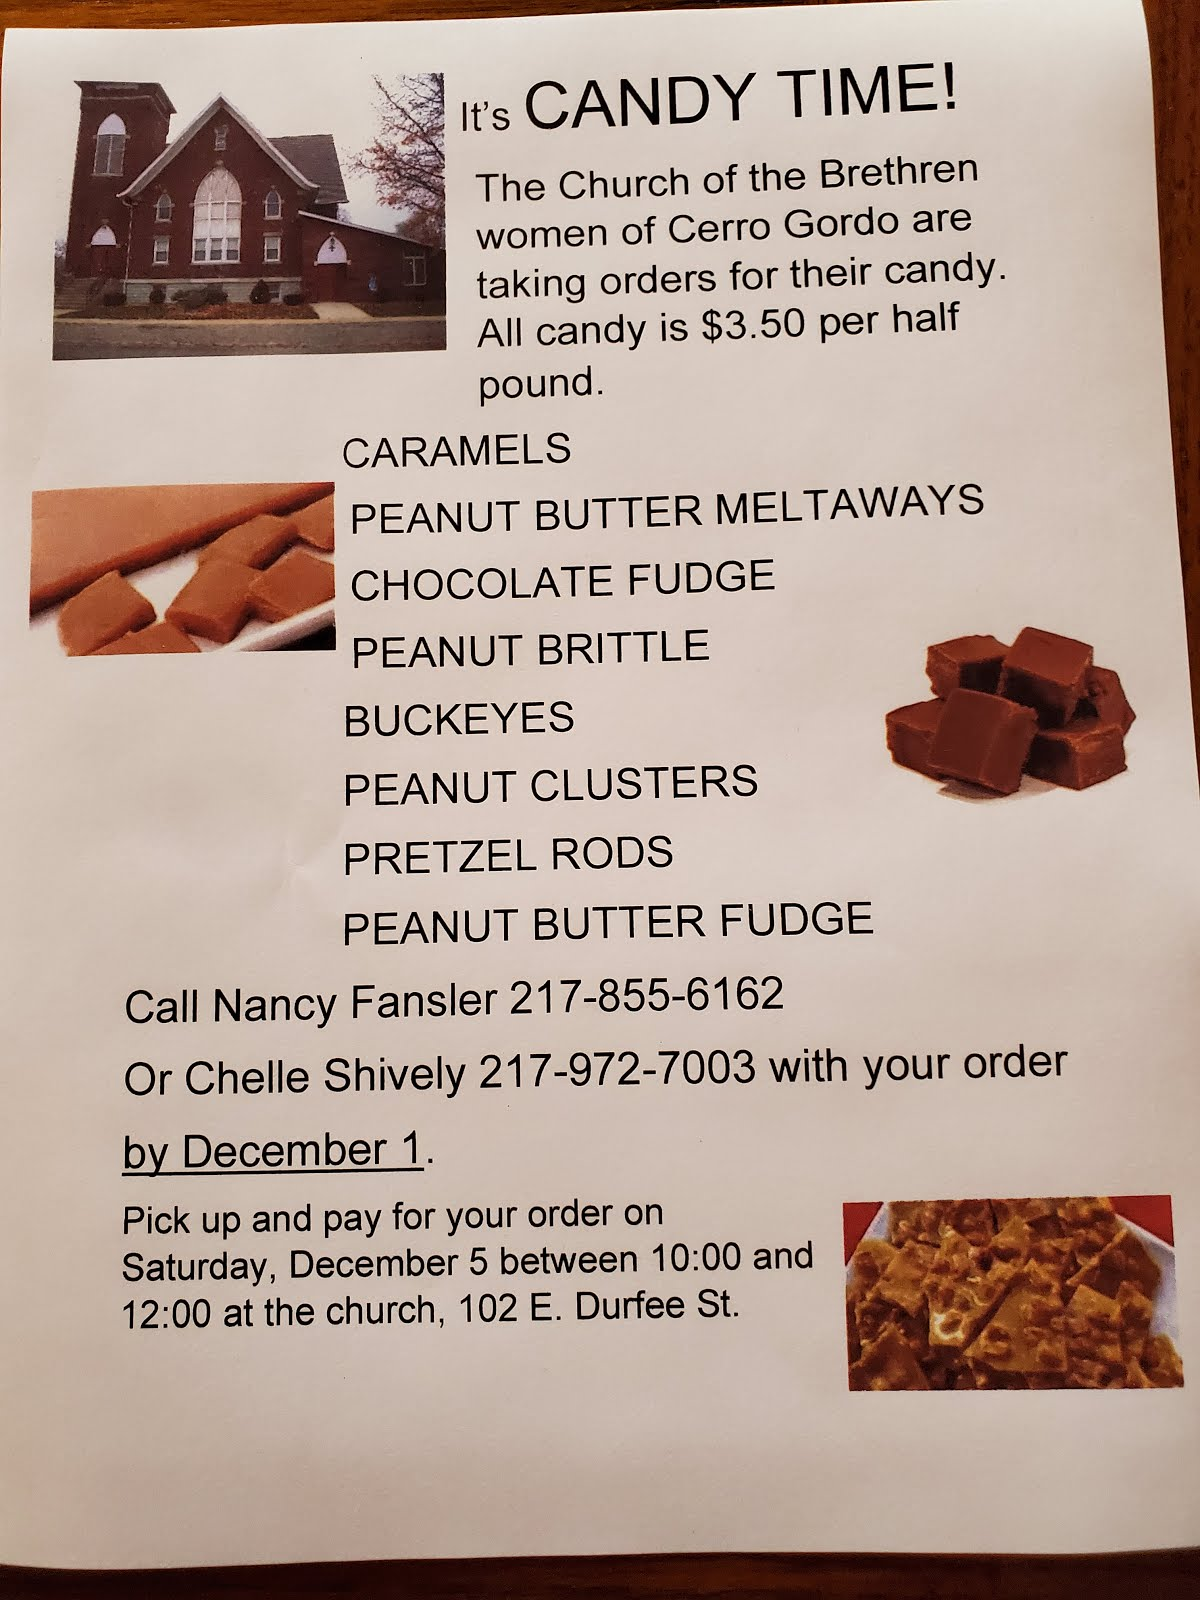 Time to Order Your Candy!